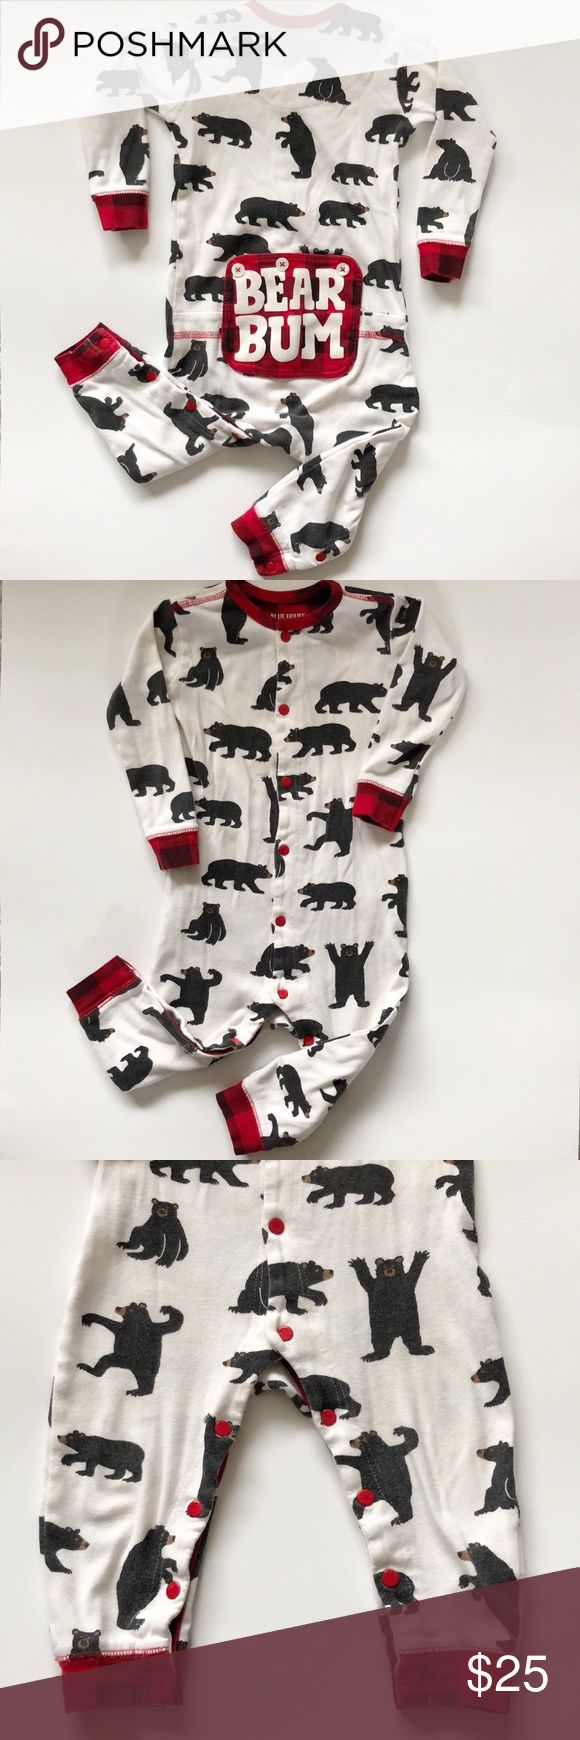 """Hatley """"Bear Bum"""" Long Johns Super cute PJs.  One of our favorite brands.  Really adorable on especially on the back side.  Snaps all the way for easy diaper changing.  No stains. Hatley Pajamas"""